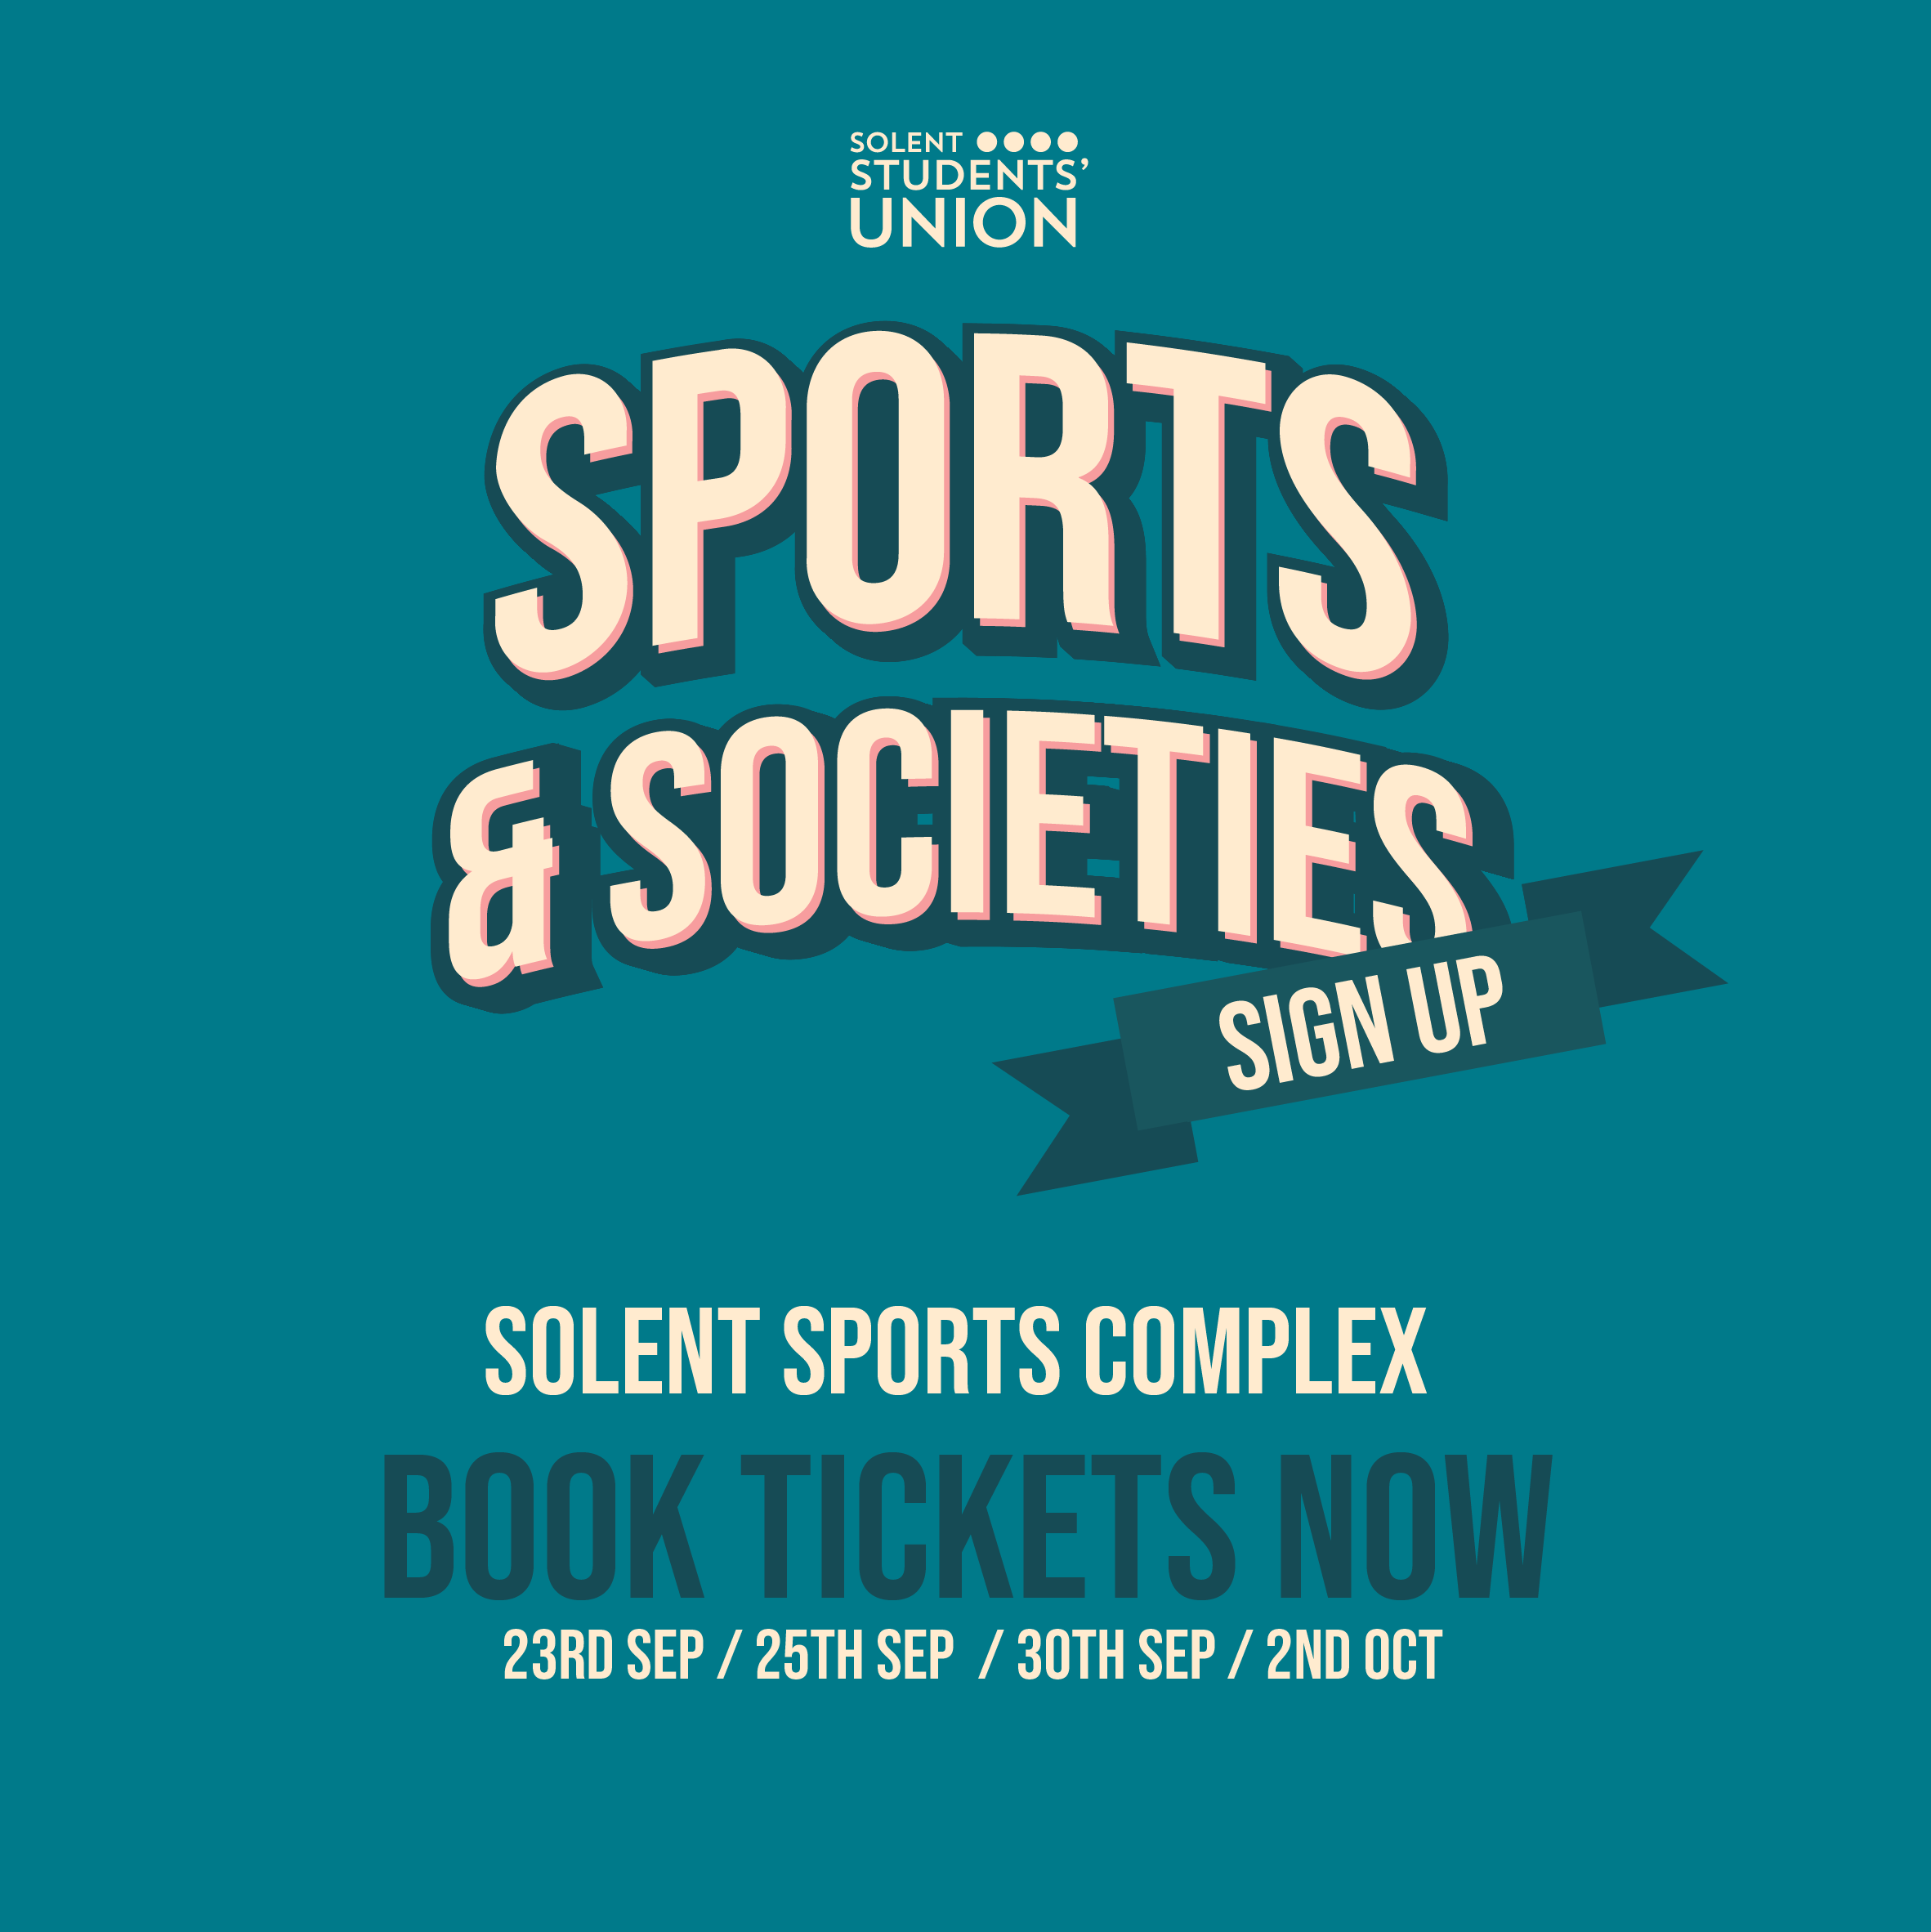 Sports and Societies Sign Up Days